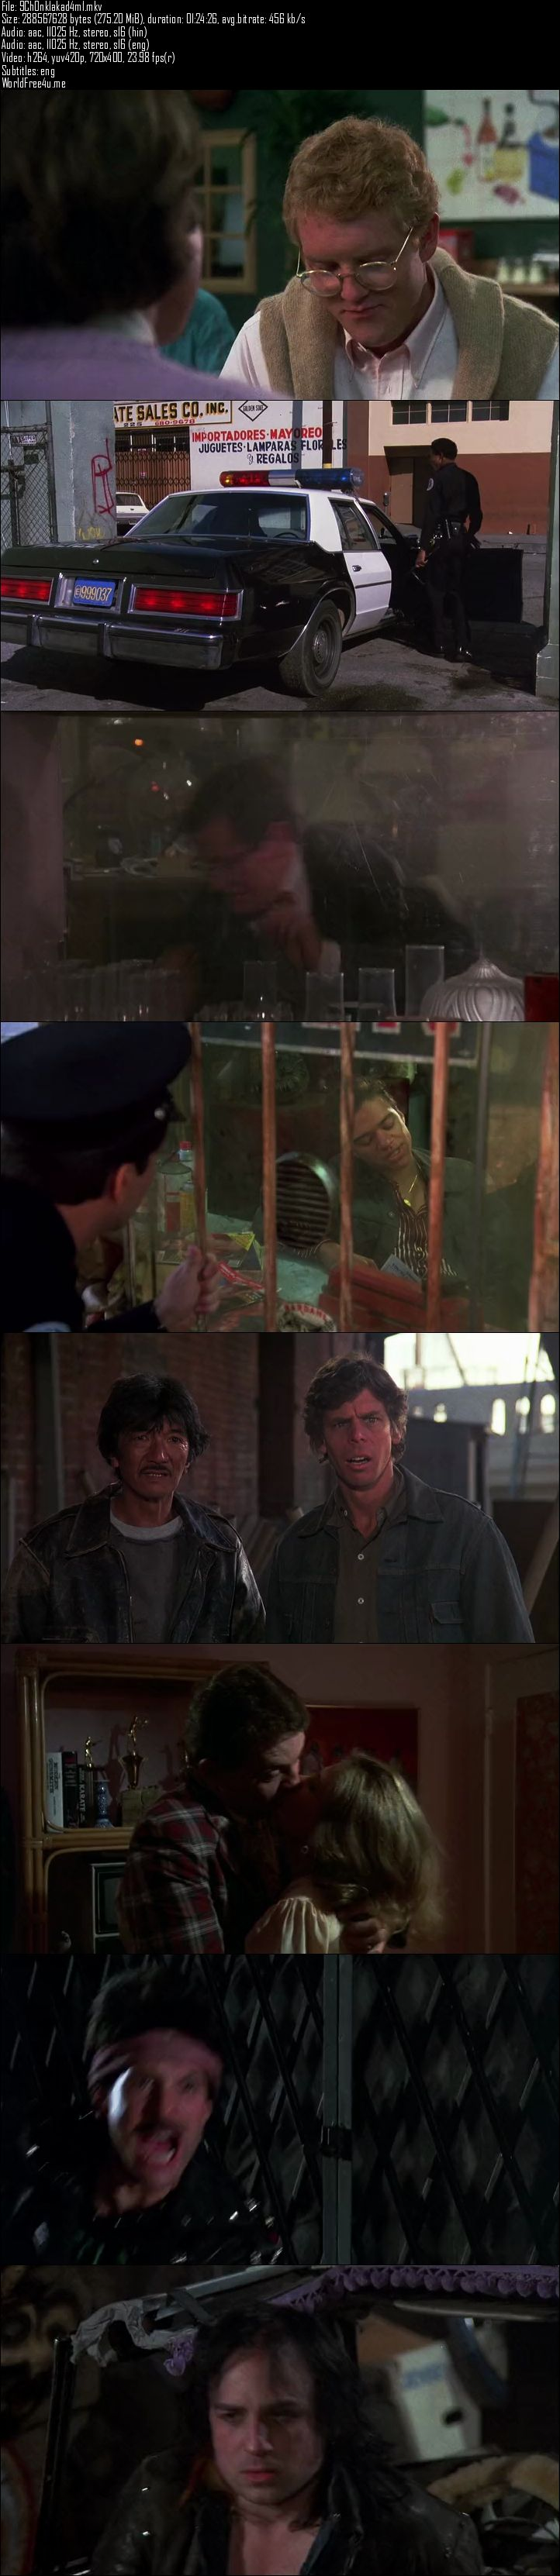 Screen Shot Of Police Academy 2 1985 Full Movie Download 300MB In Hindi 480P ESubs Full small Size PC Movie